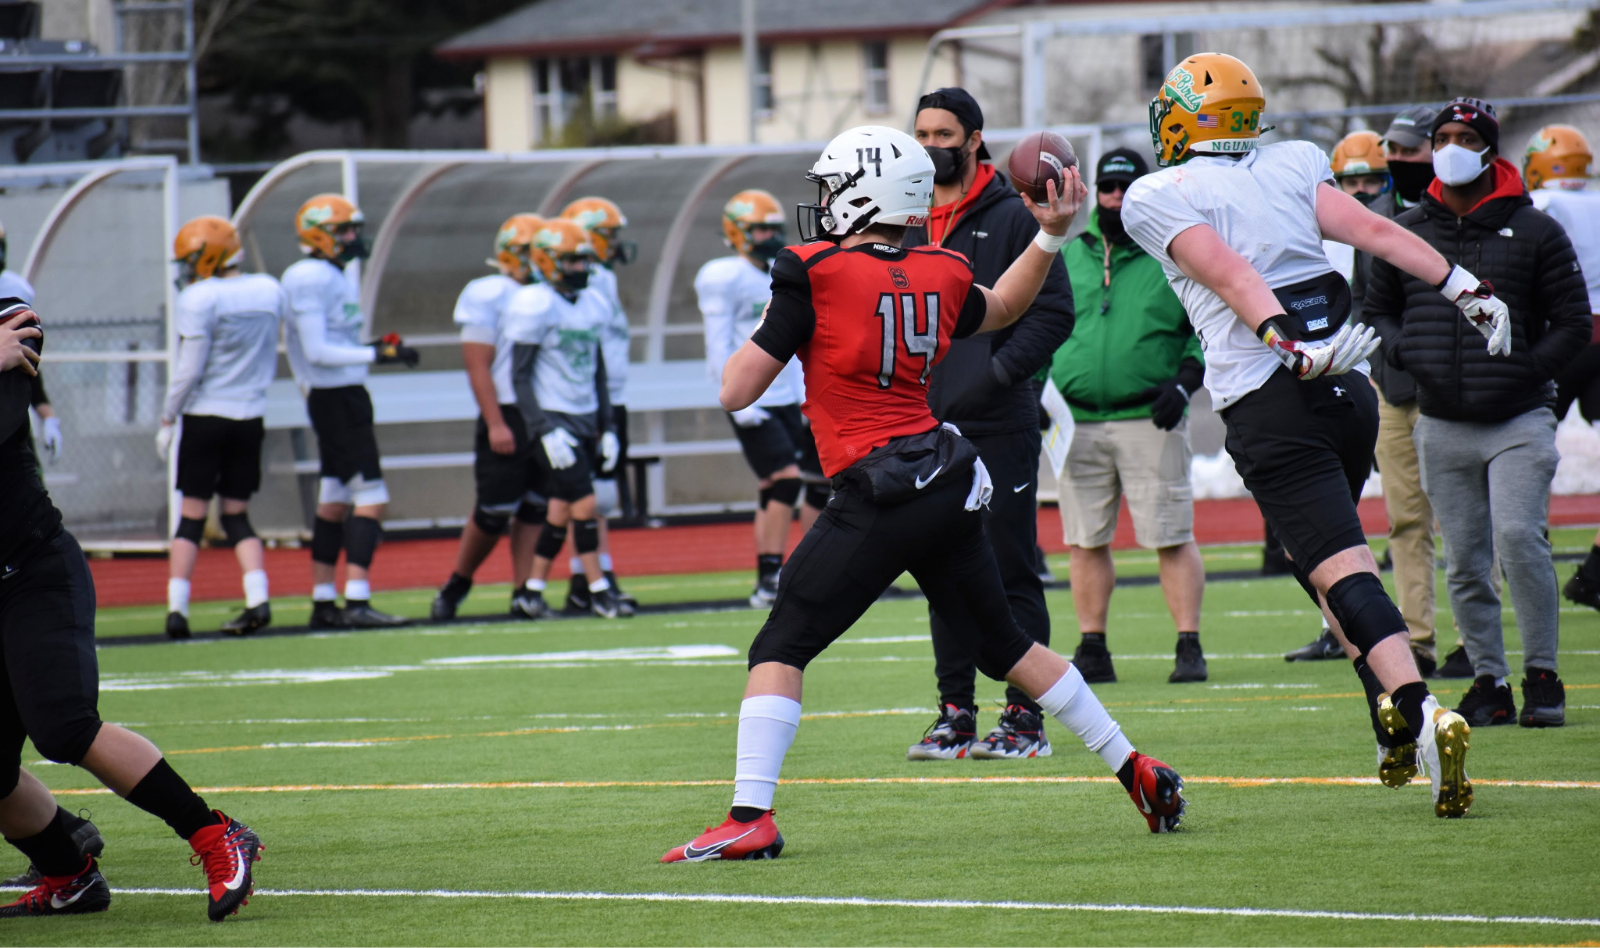 Football Jamboree vs. Tumwater